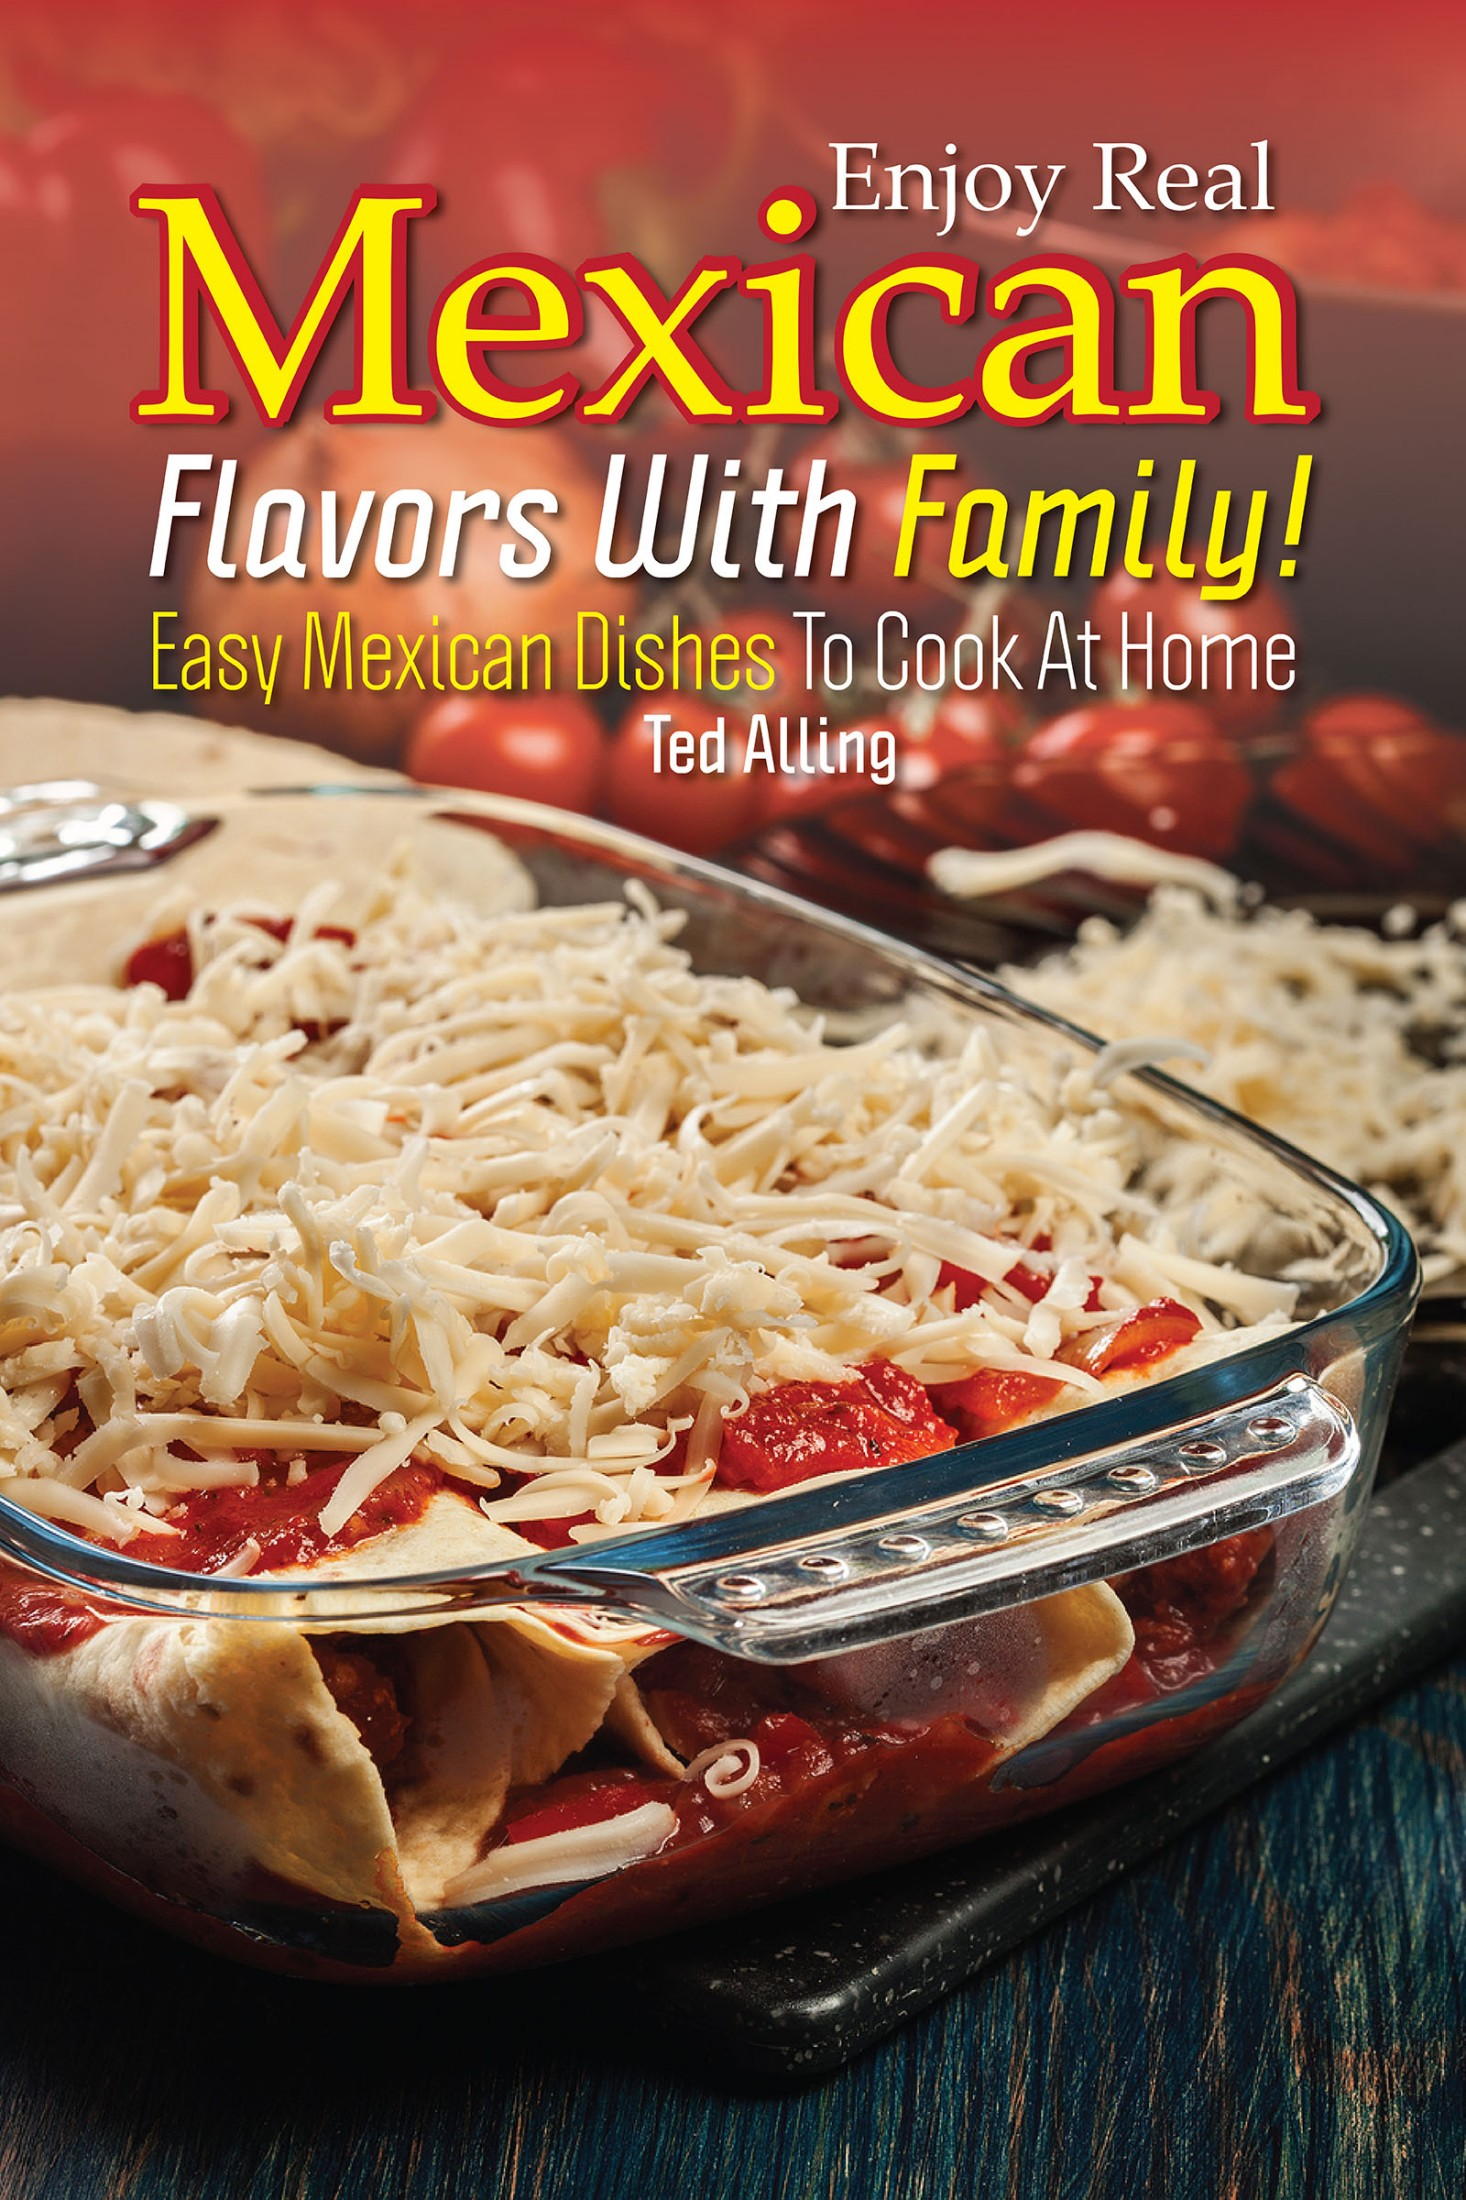 Smashwords Enjoy Real Mexican Flavors With Family Easy Mexican